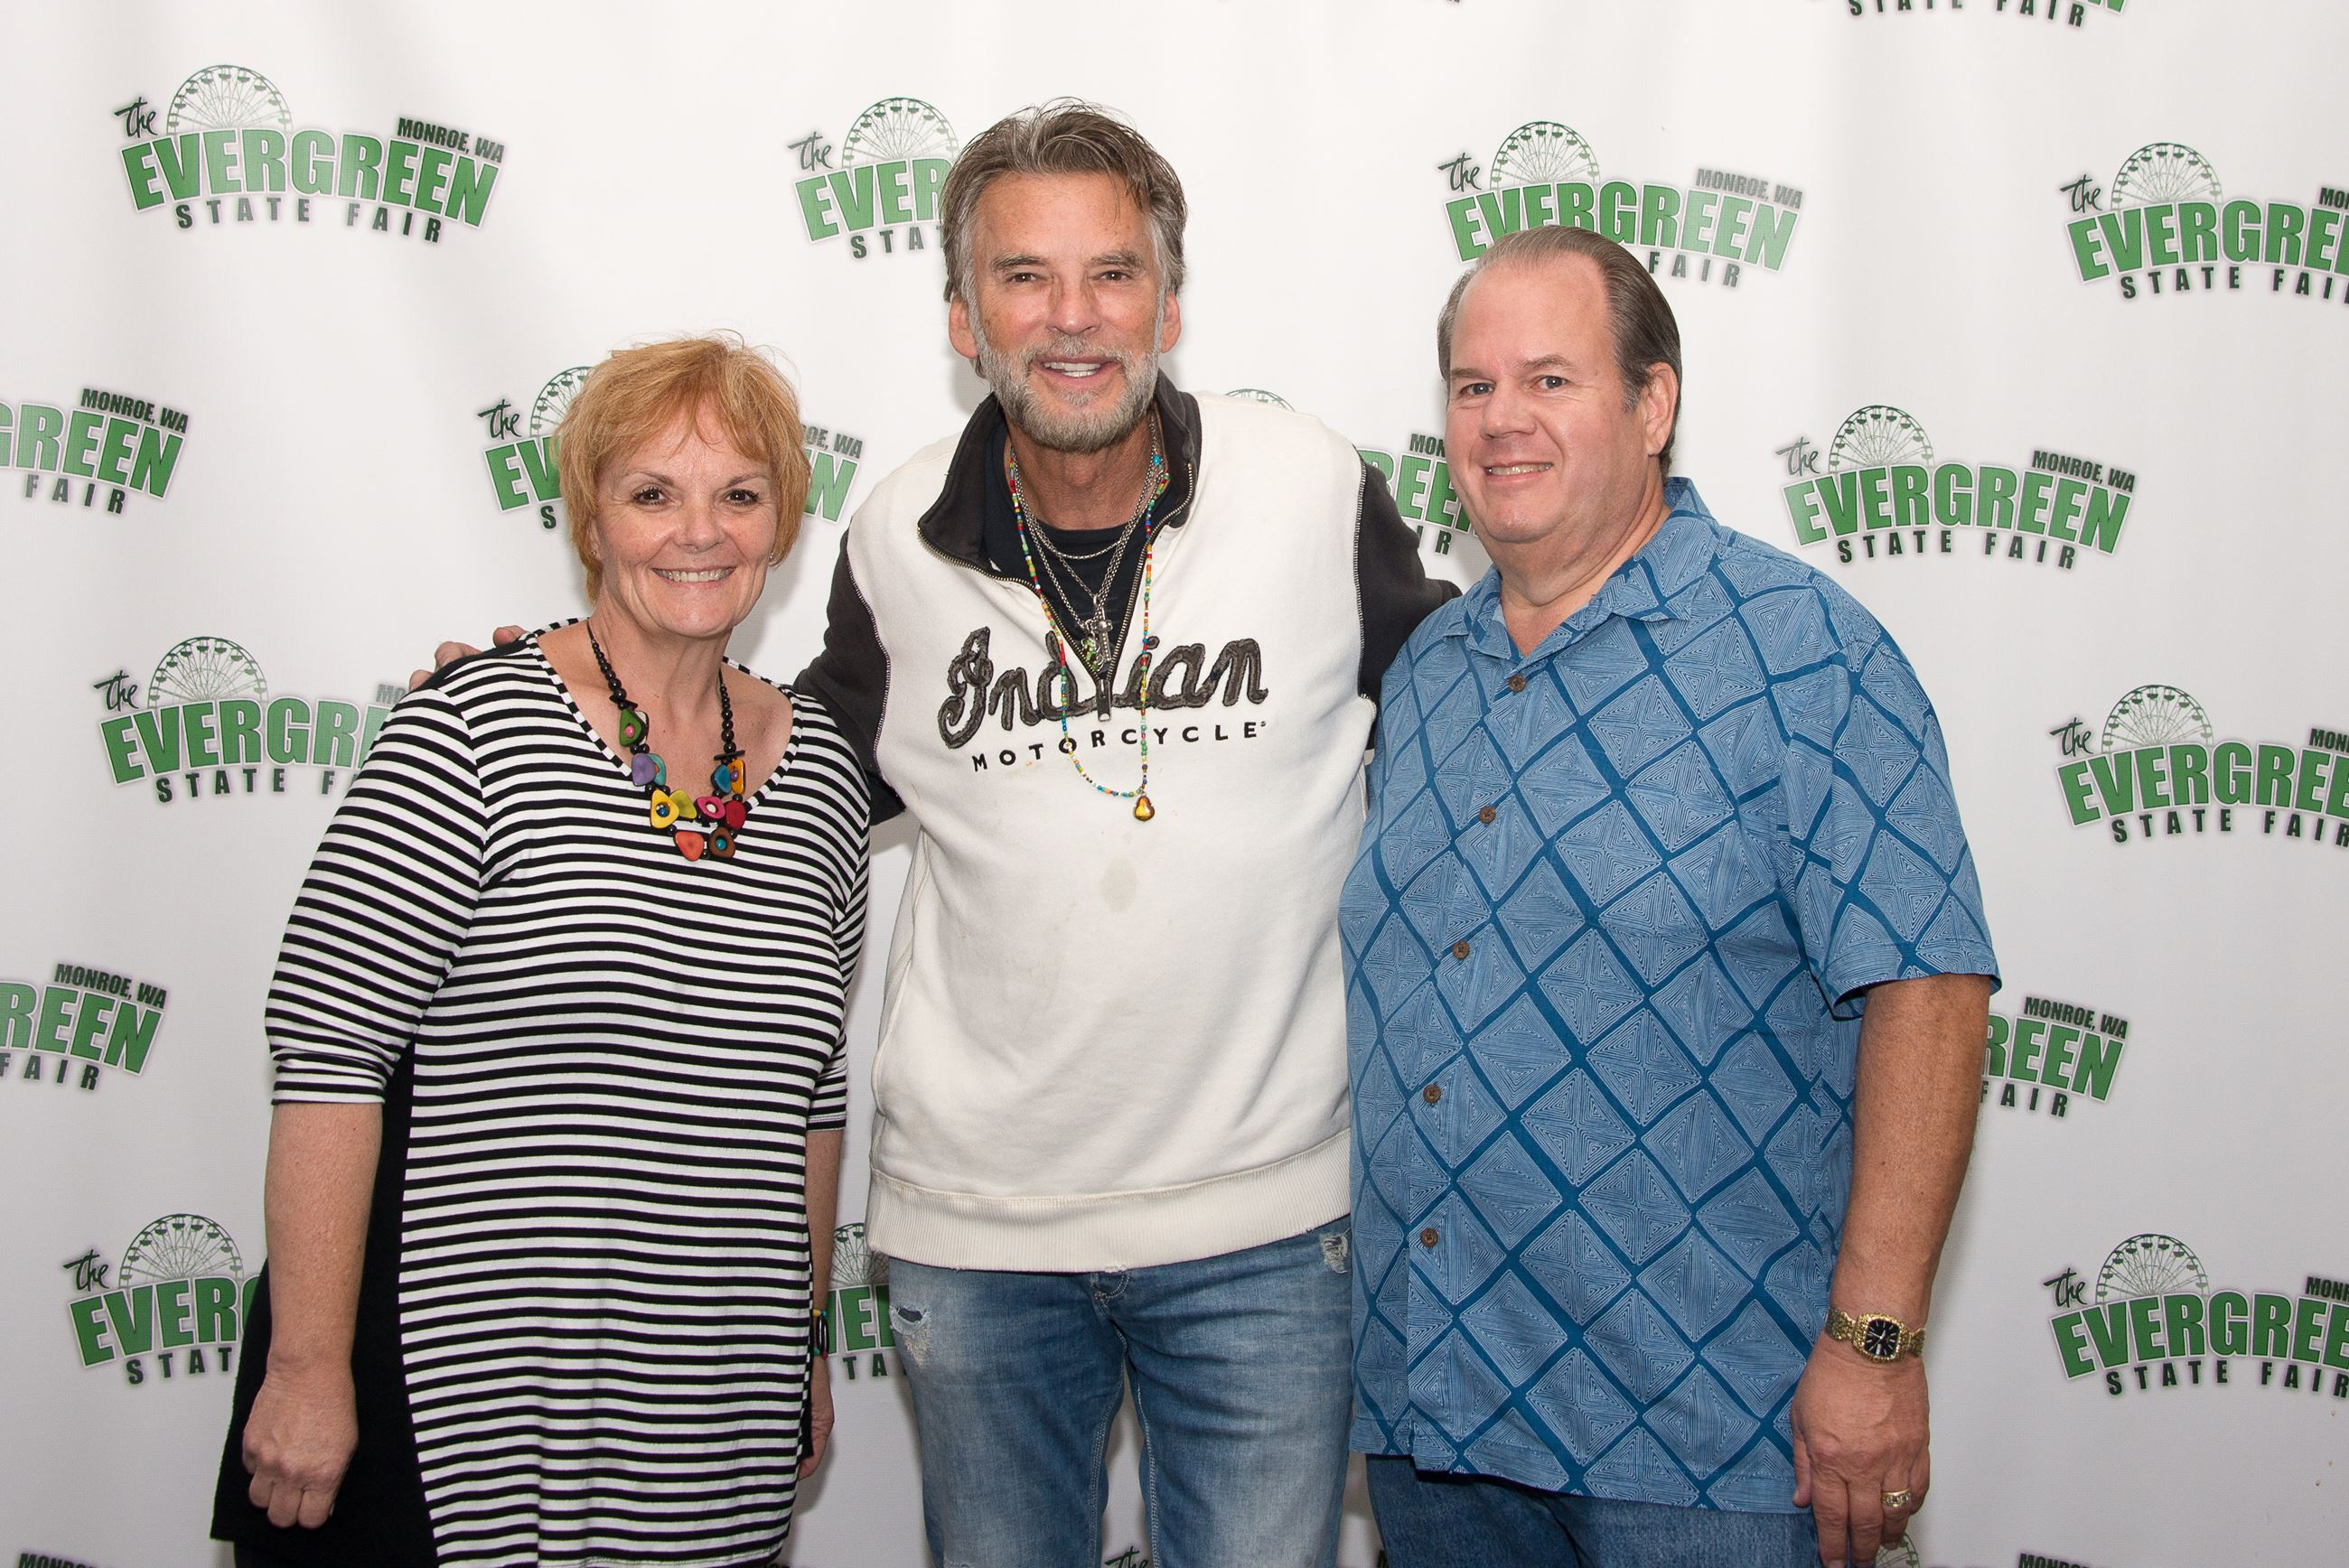 Evergreen state fairgrounds wa official website kenny loggins meet greets august 31 2017 kristyandbryce Choice Image